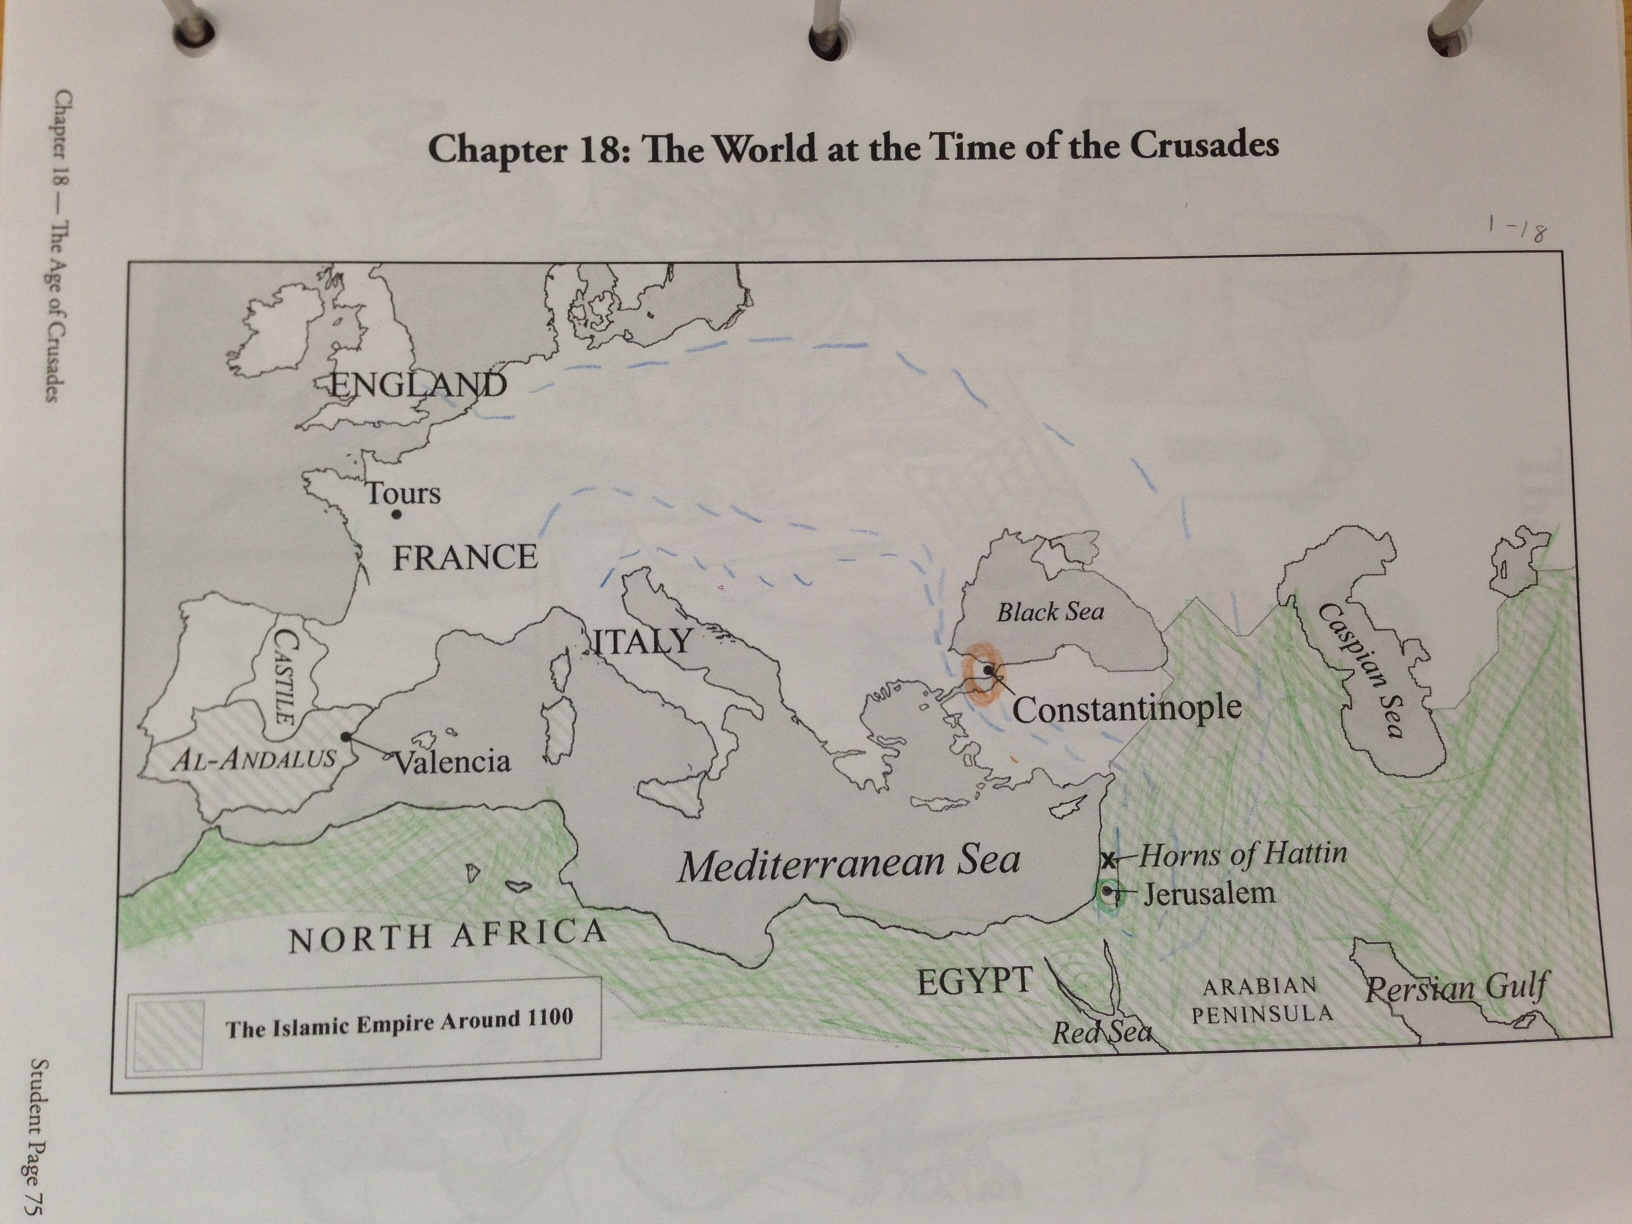 History review the story of the world volume 2 house of hurt every monday we read a chapter then briefly covered the review questions and did the accompanying map work from that chapter in the activity book gumiabroncs Gallery